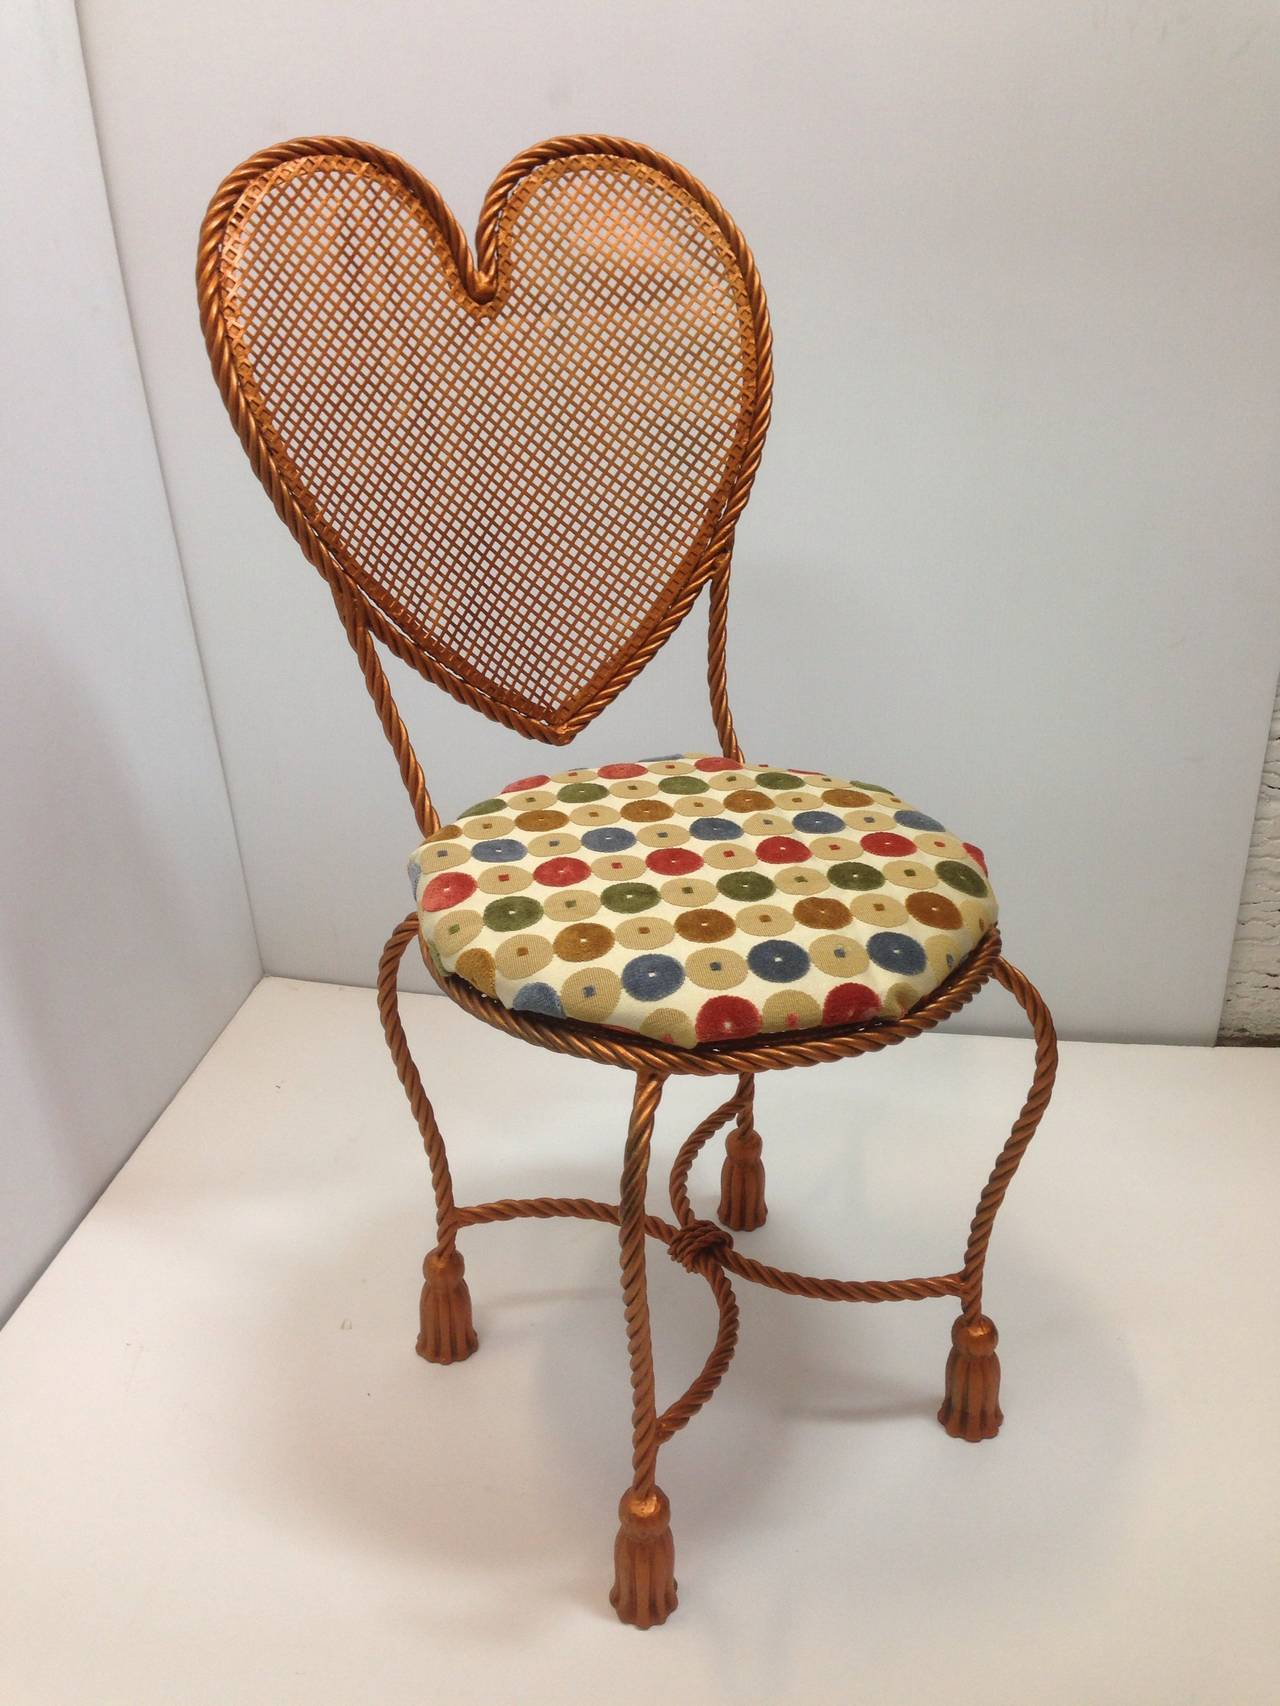 Heart Chair Heart Shaped Rope Chair For Sale At 1stdibs